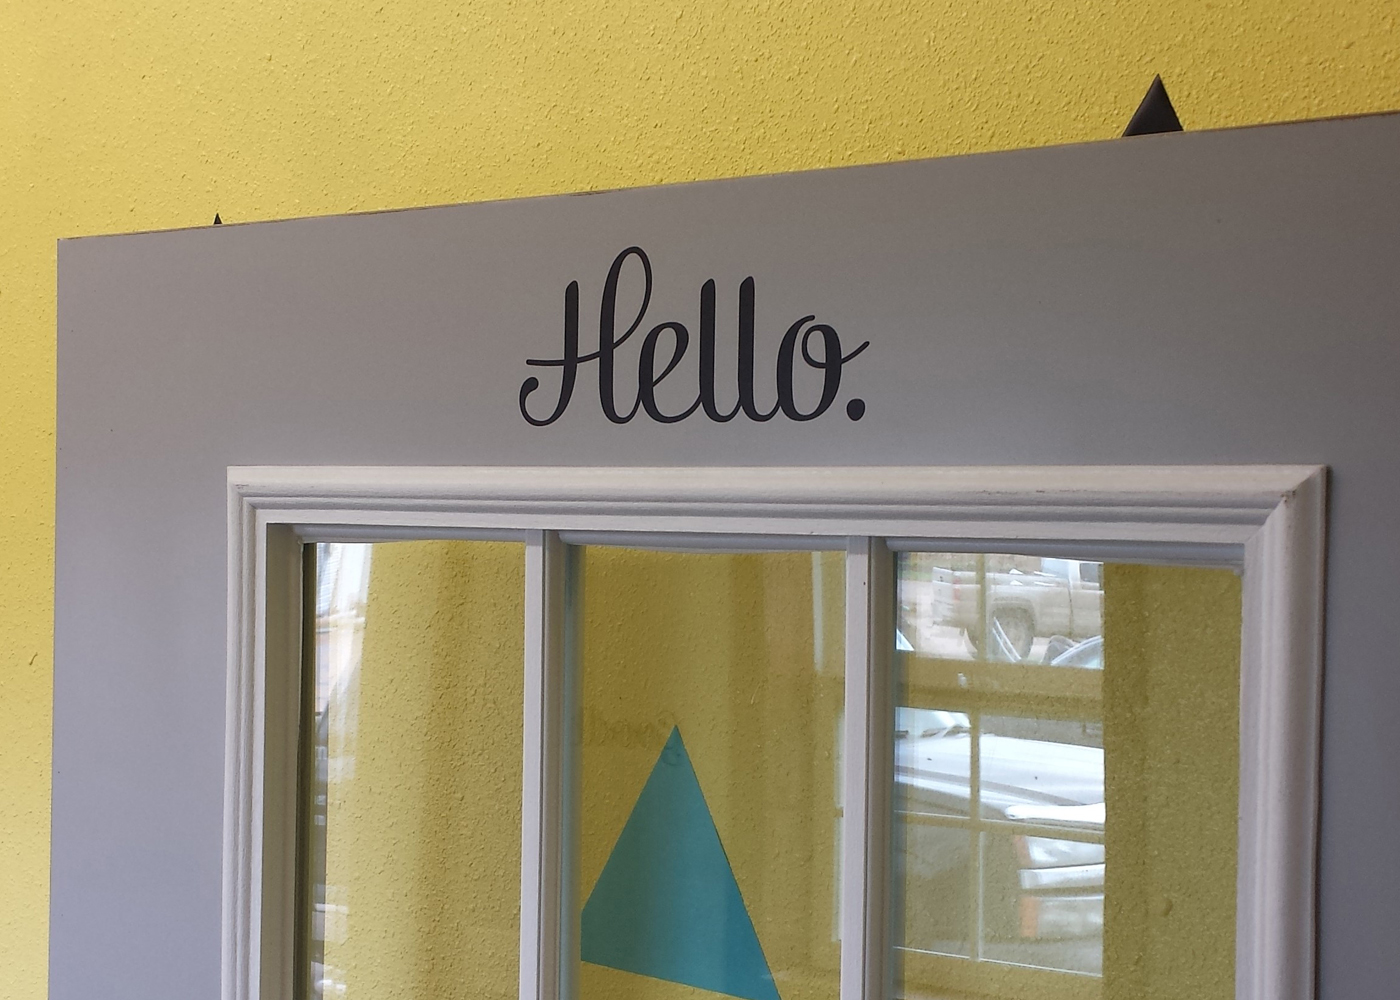 hello-goodbye-wall-decal-entryway-quote.jpg